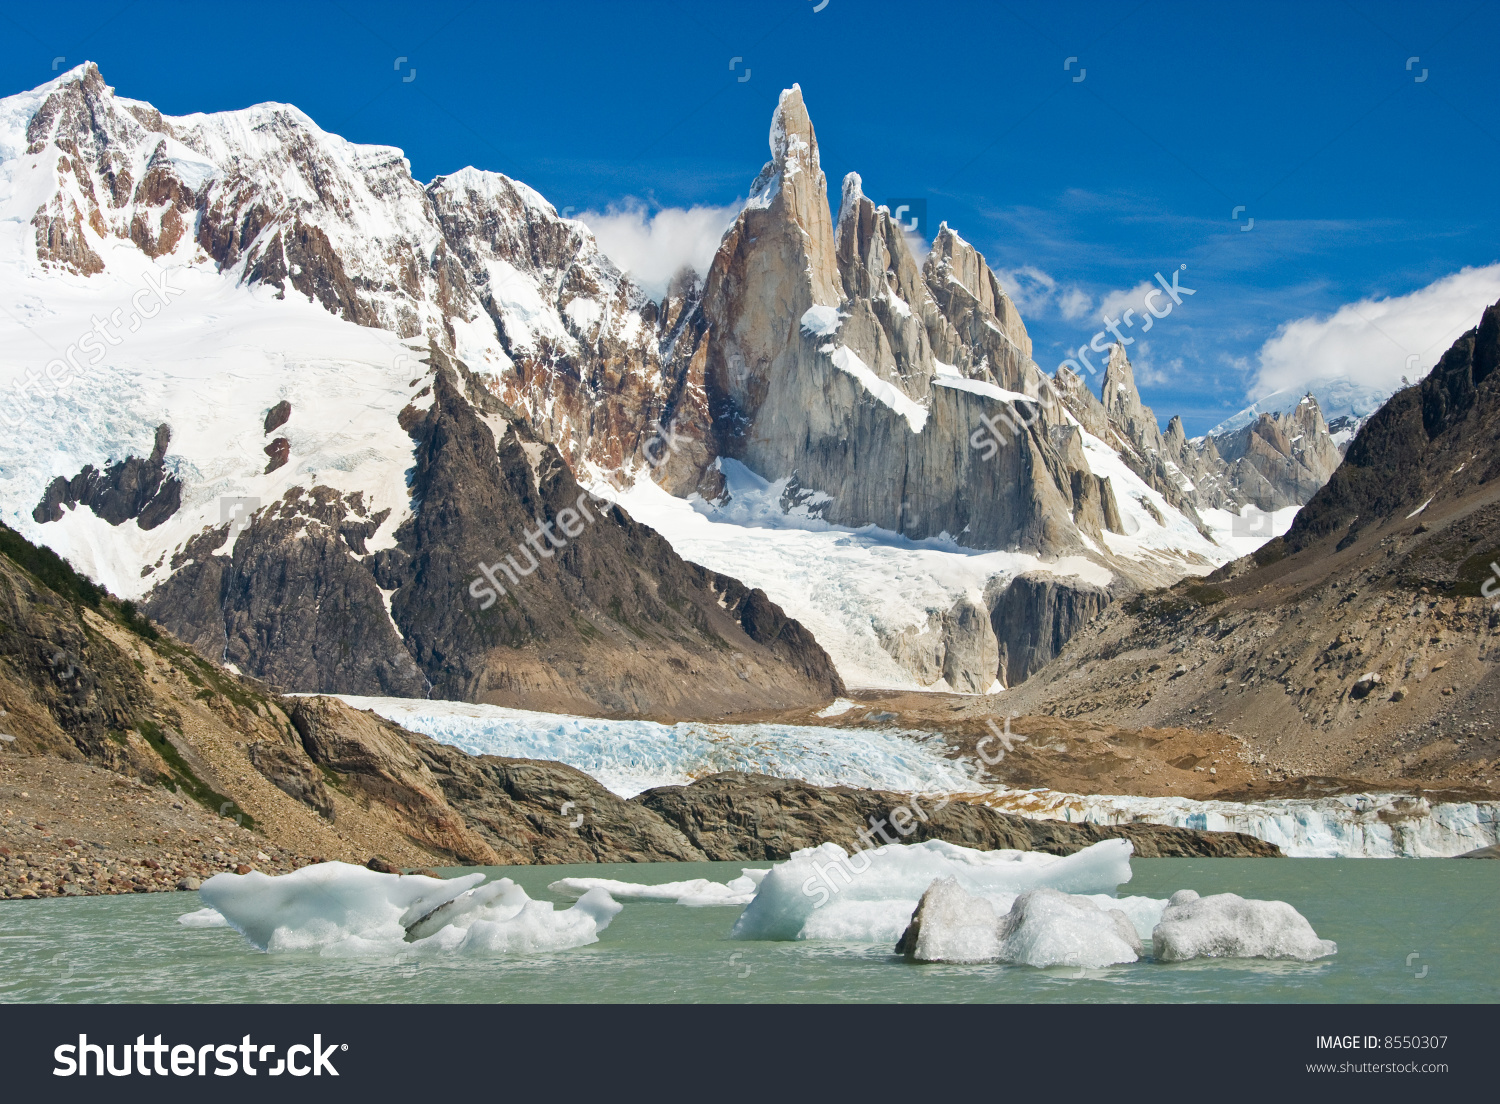 Cerro Torre clipart #17, Download drawings